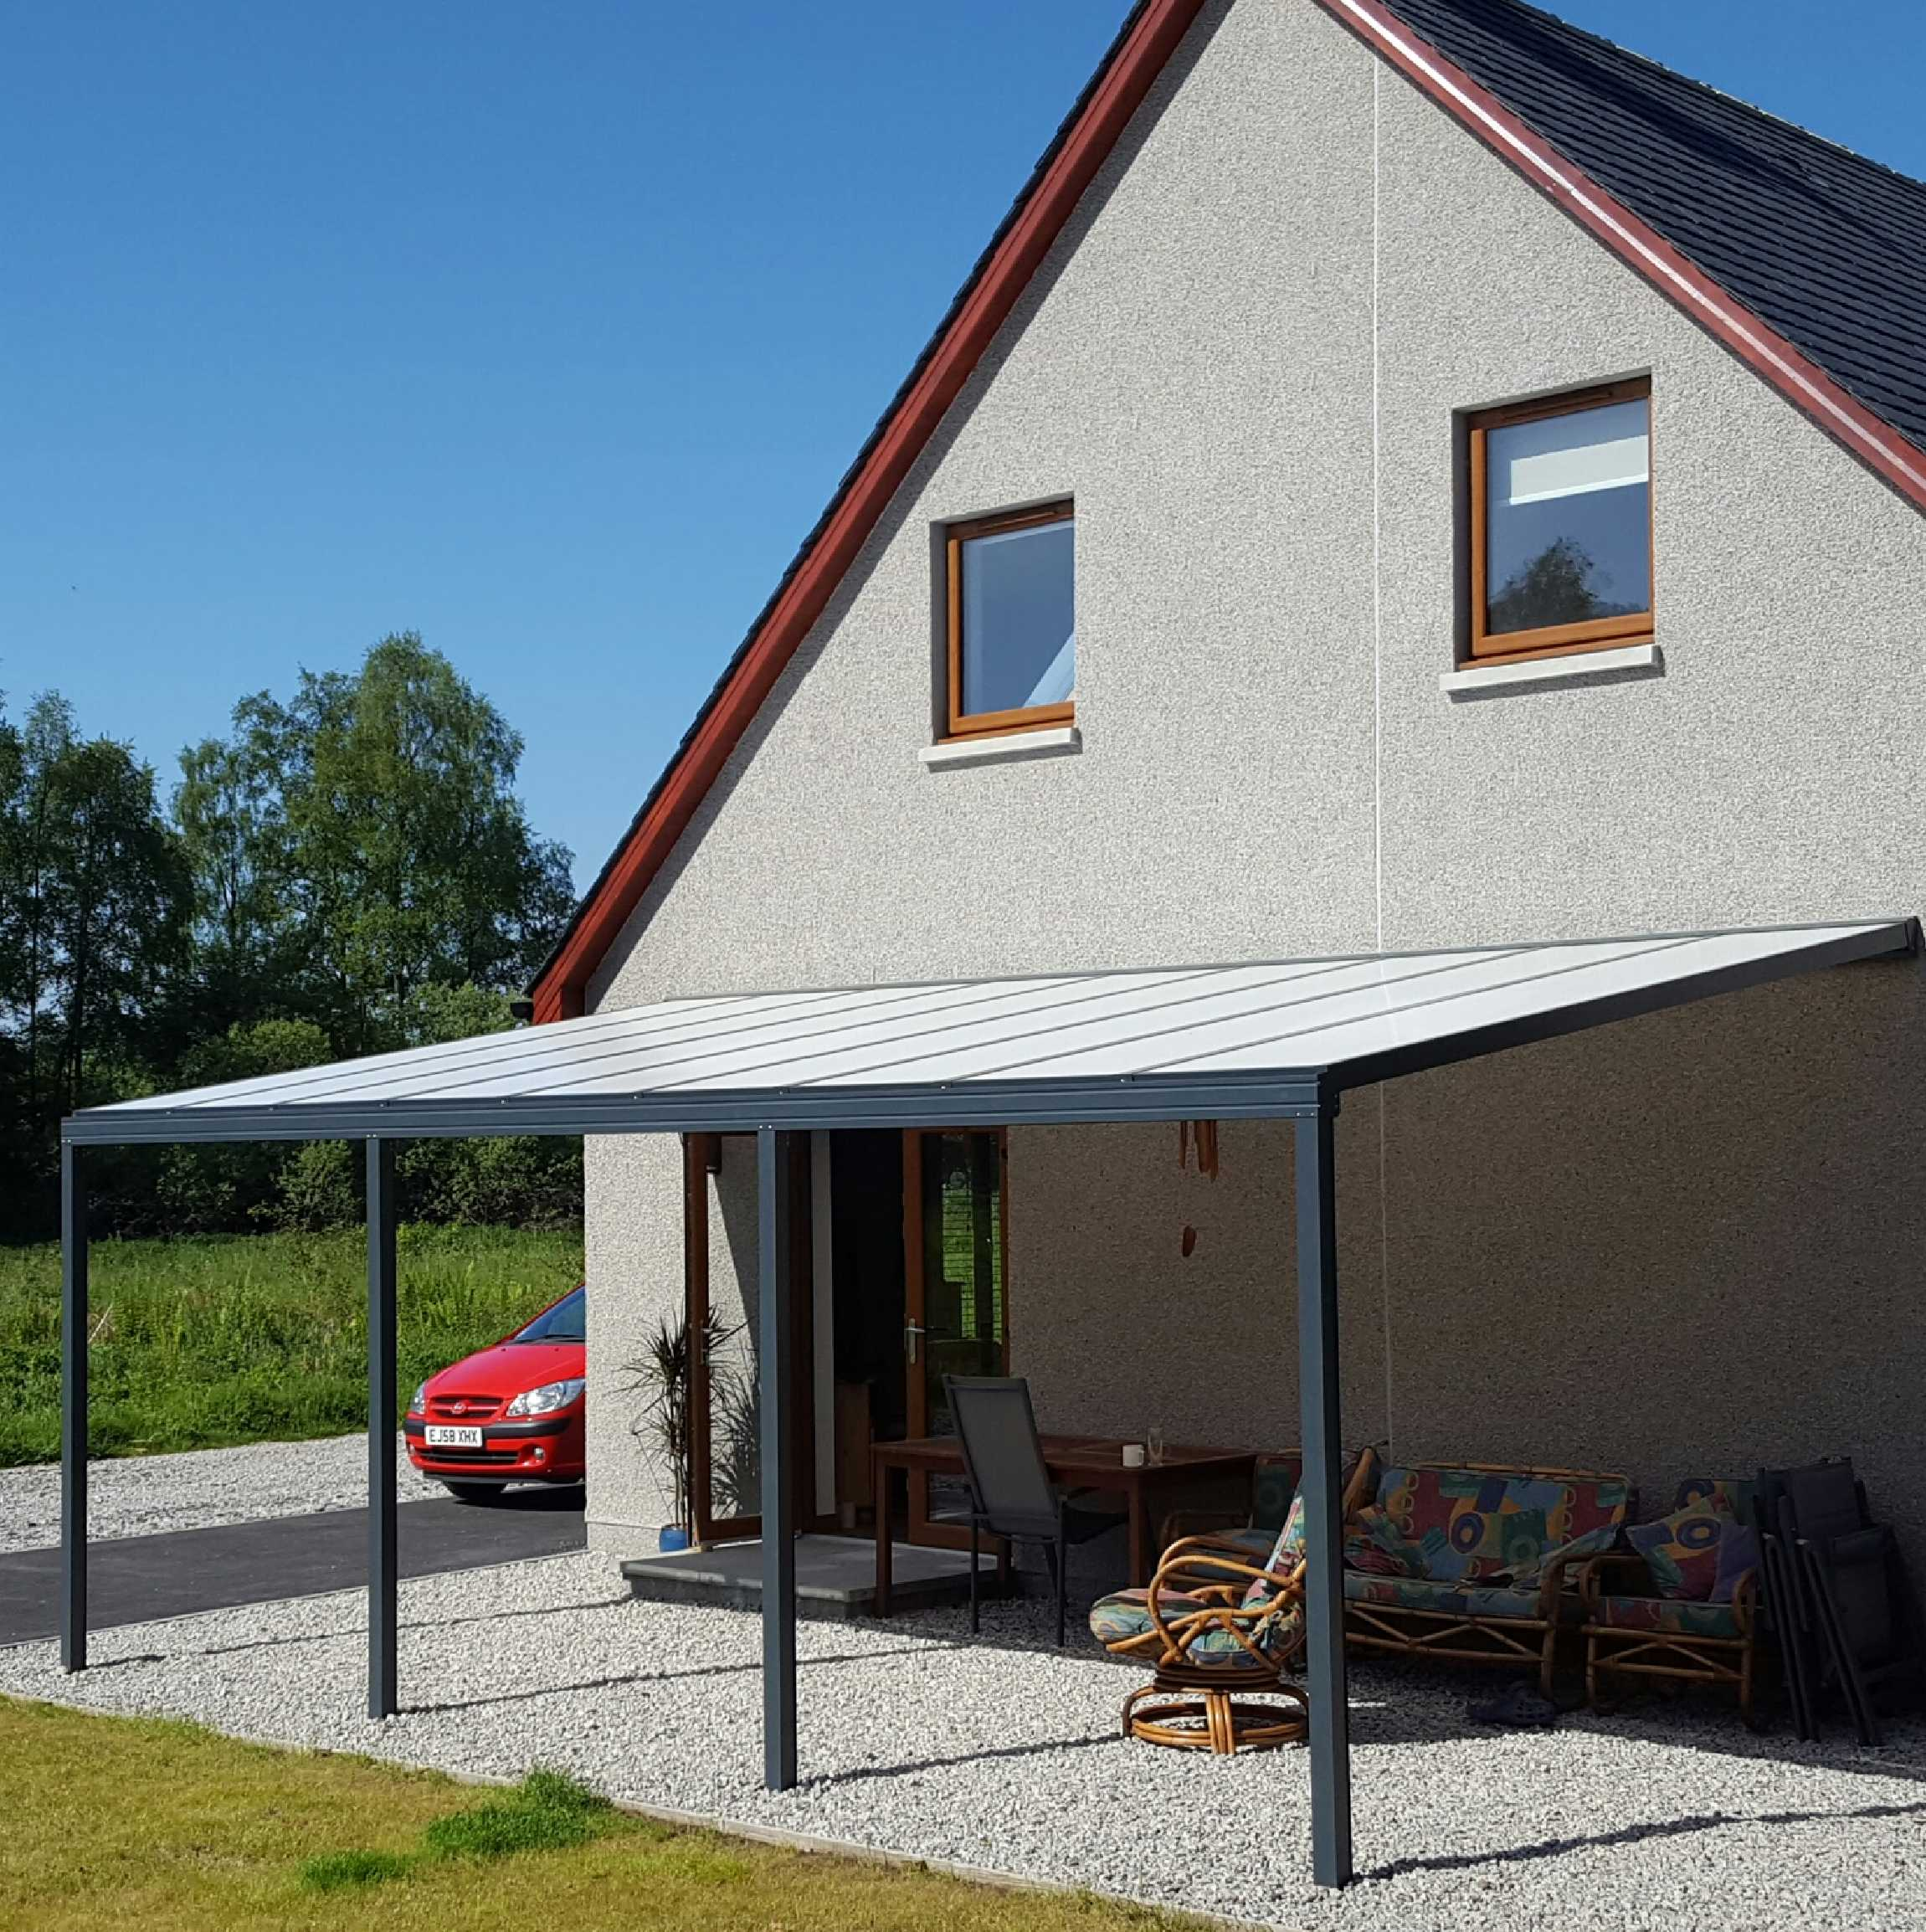 Great selection of Omega Smart Lean-To Canopy, Anthracite Grey, 16mm Polycarbonate Glazing - 2.1m (W) x 3.0m (P), (2) Supporting Posts